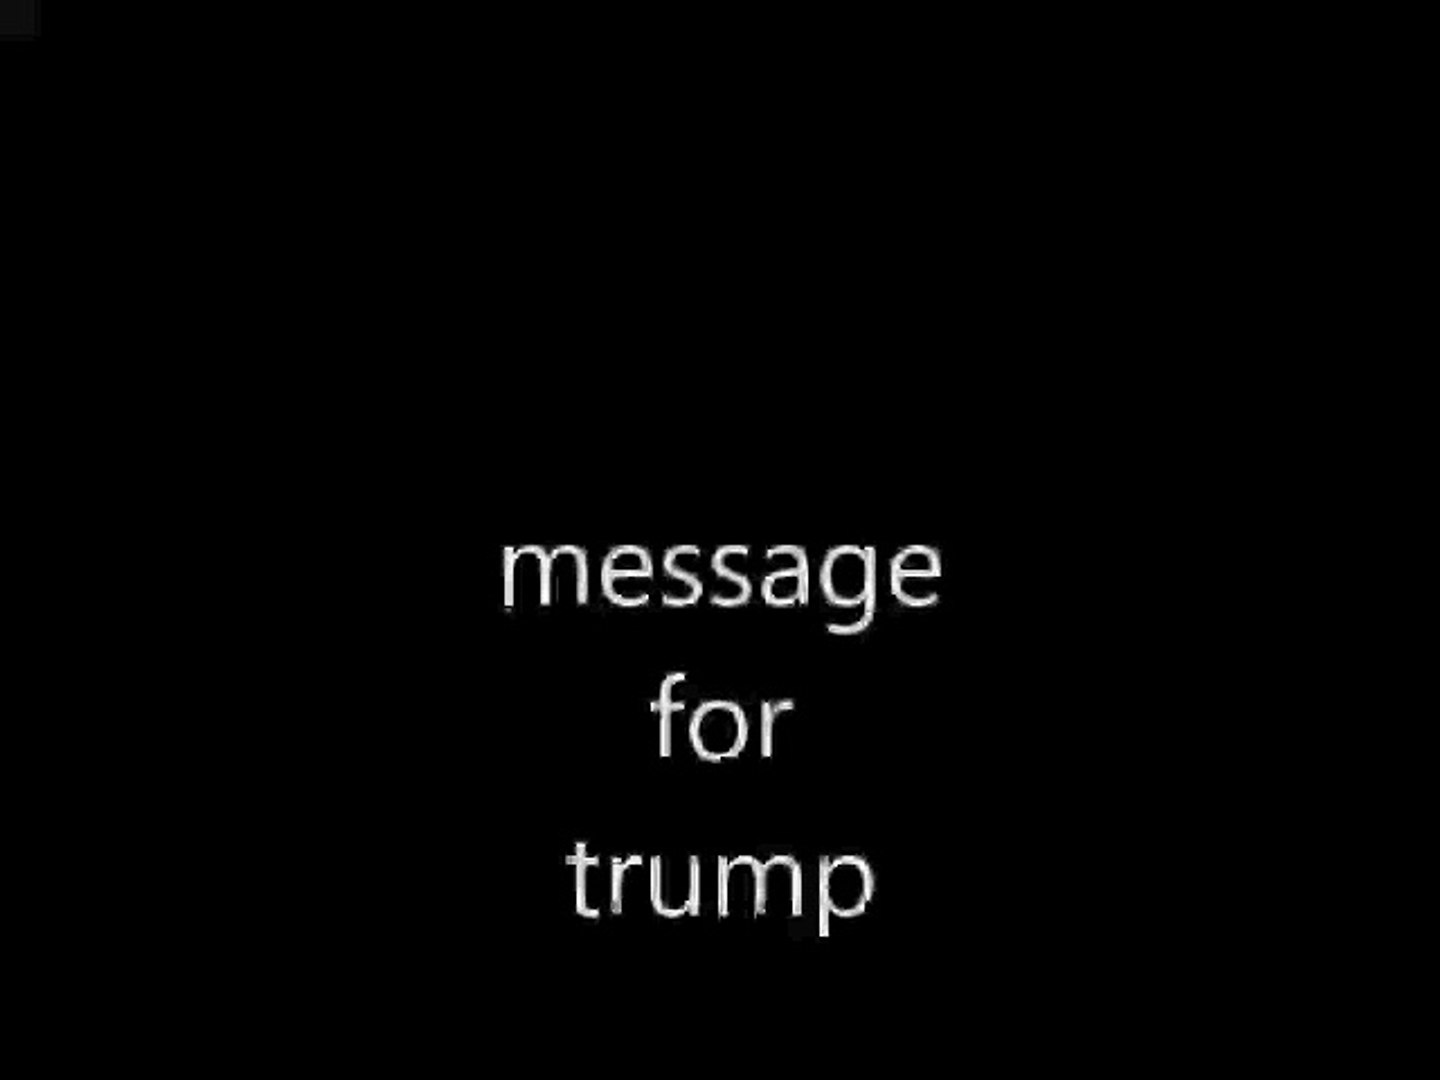 message for Donald trump